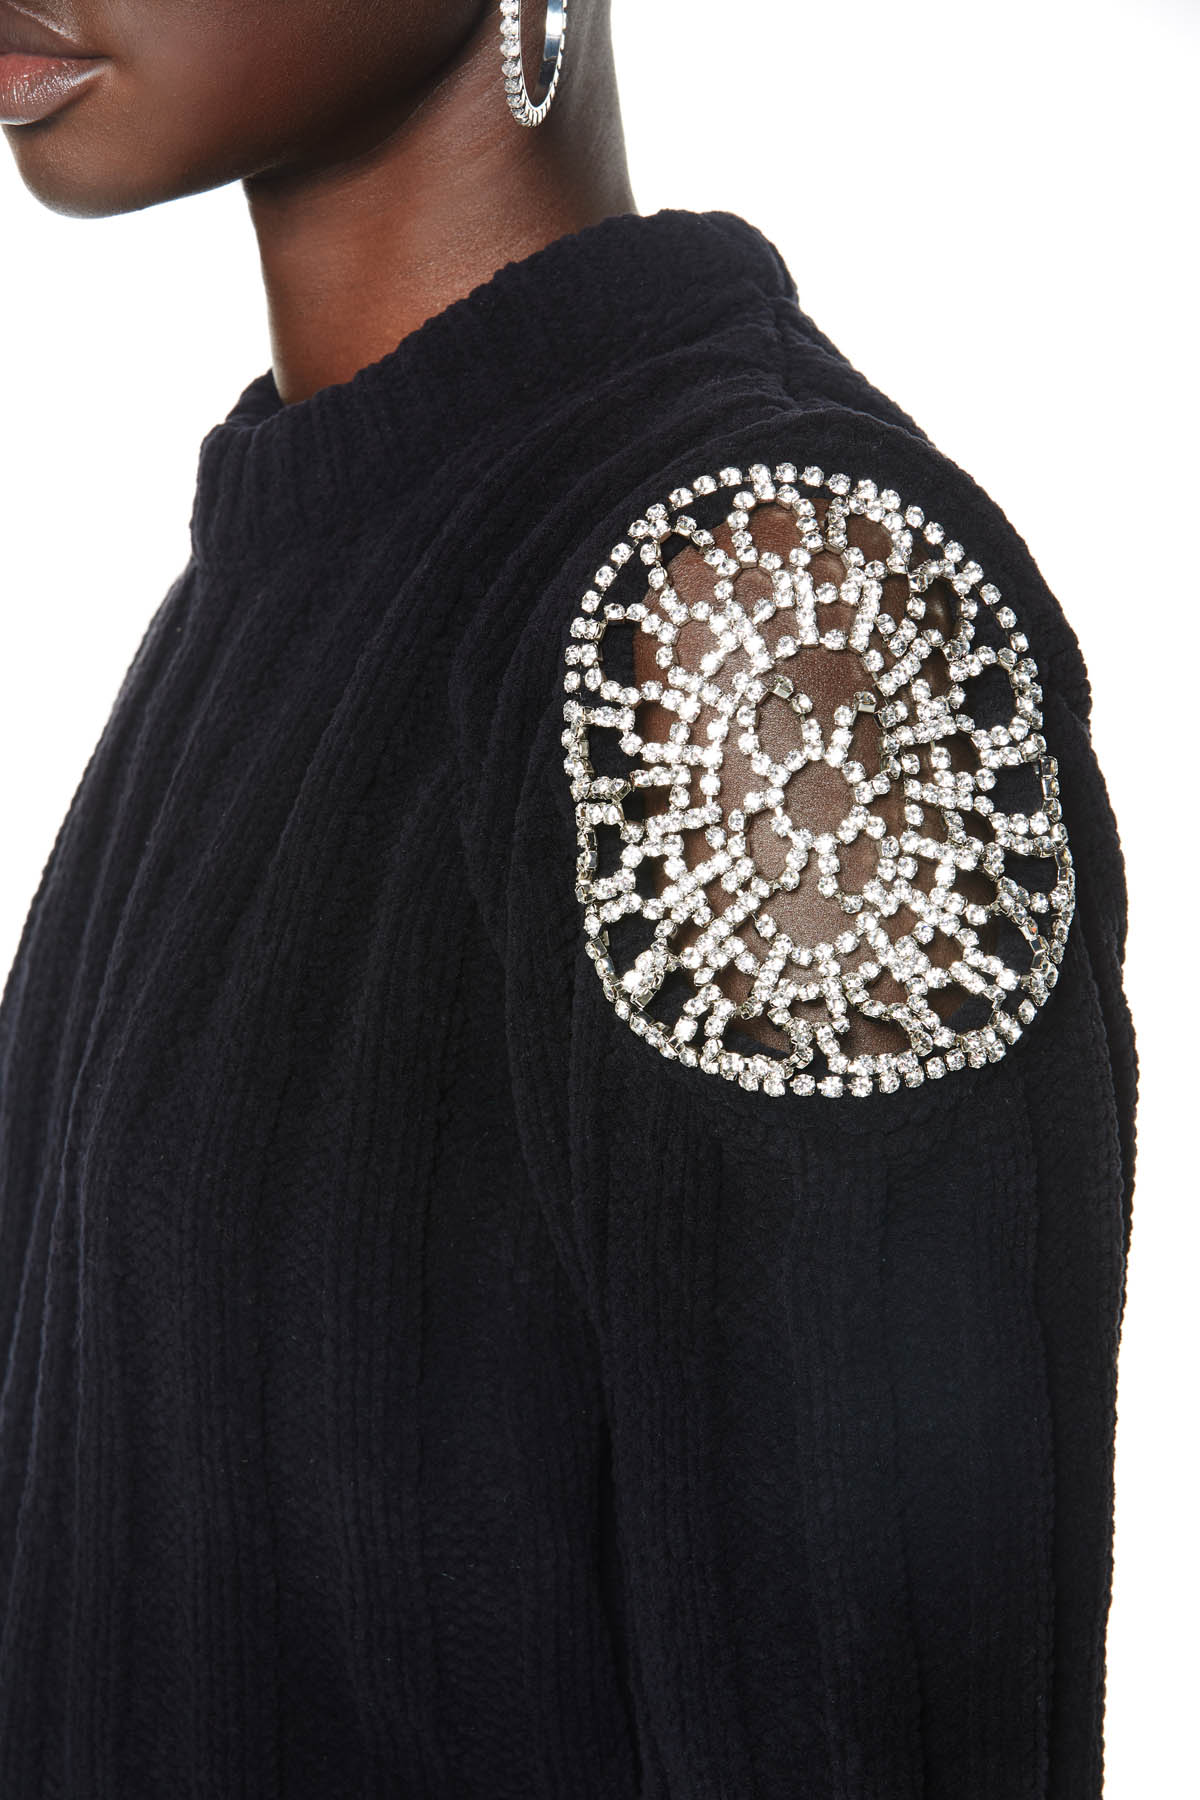 Cropped knitted sweater with clear crystal doily inserts on shoulders. Available in black.